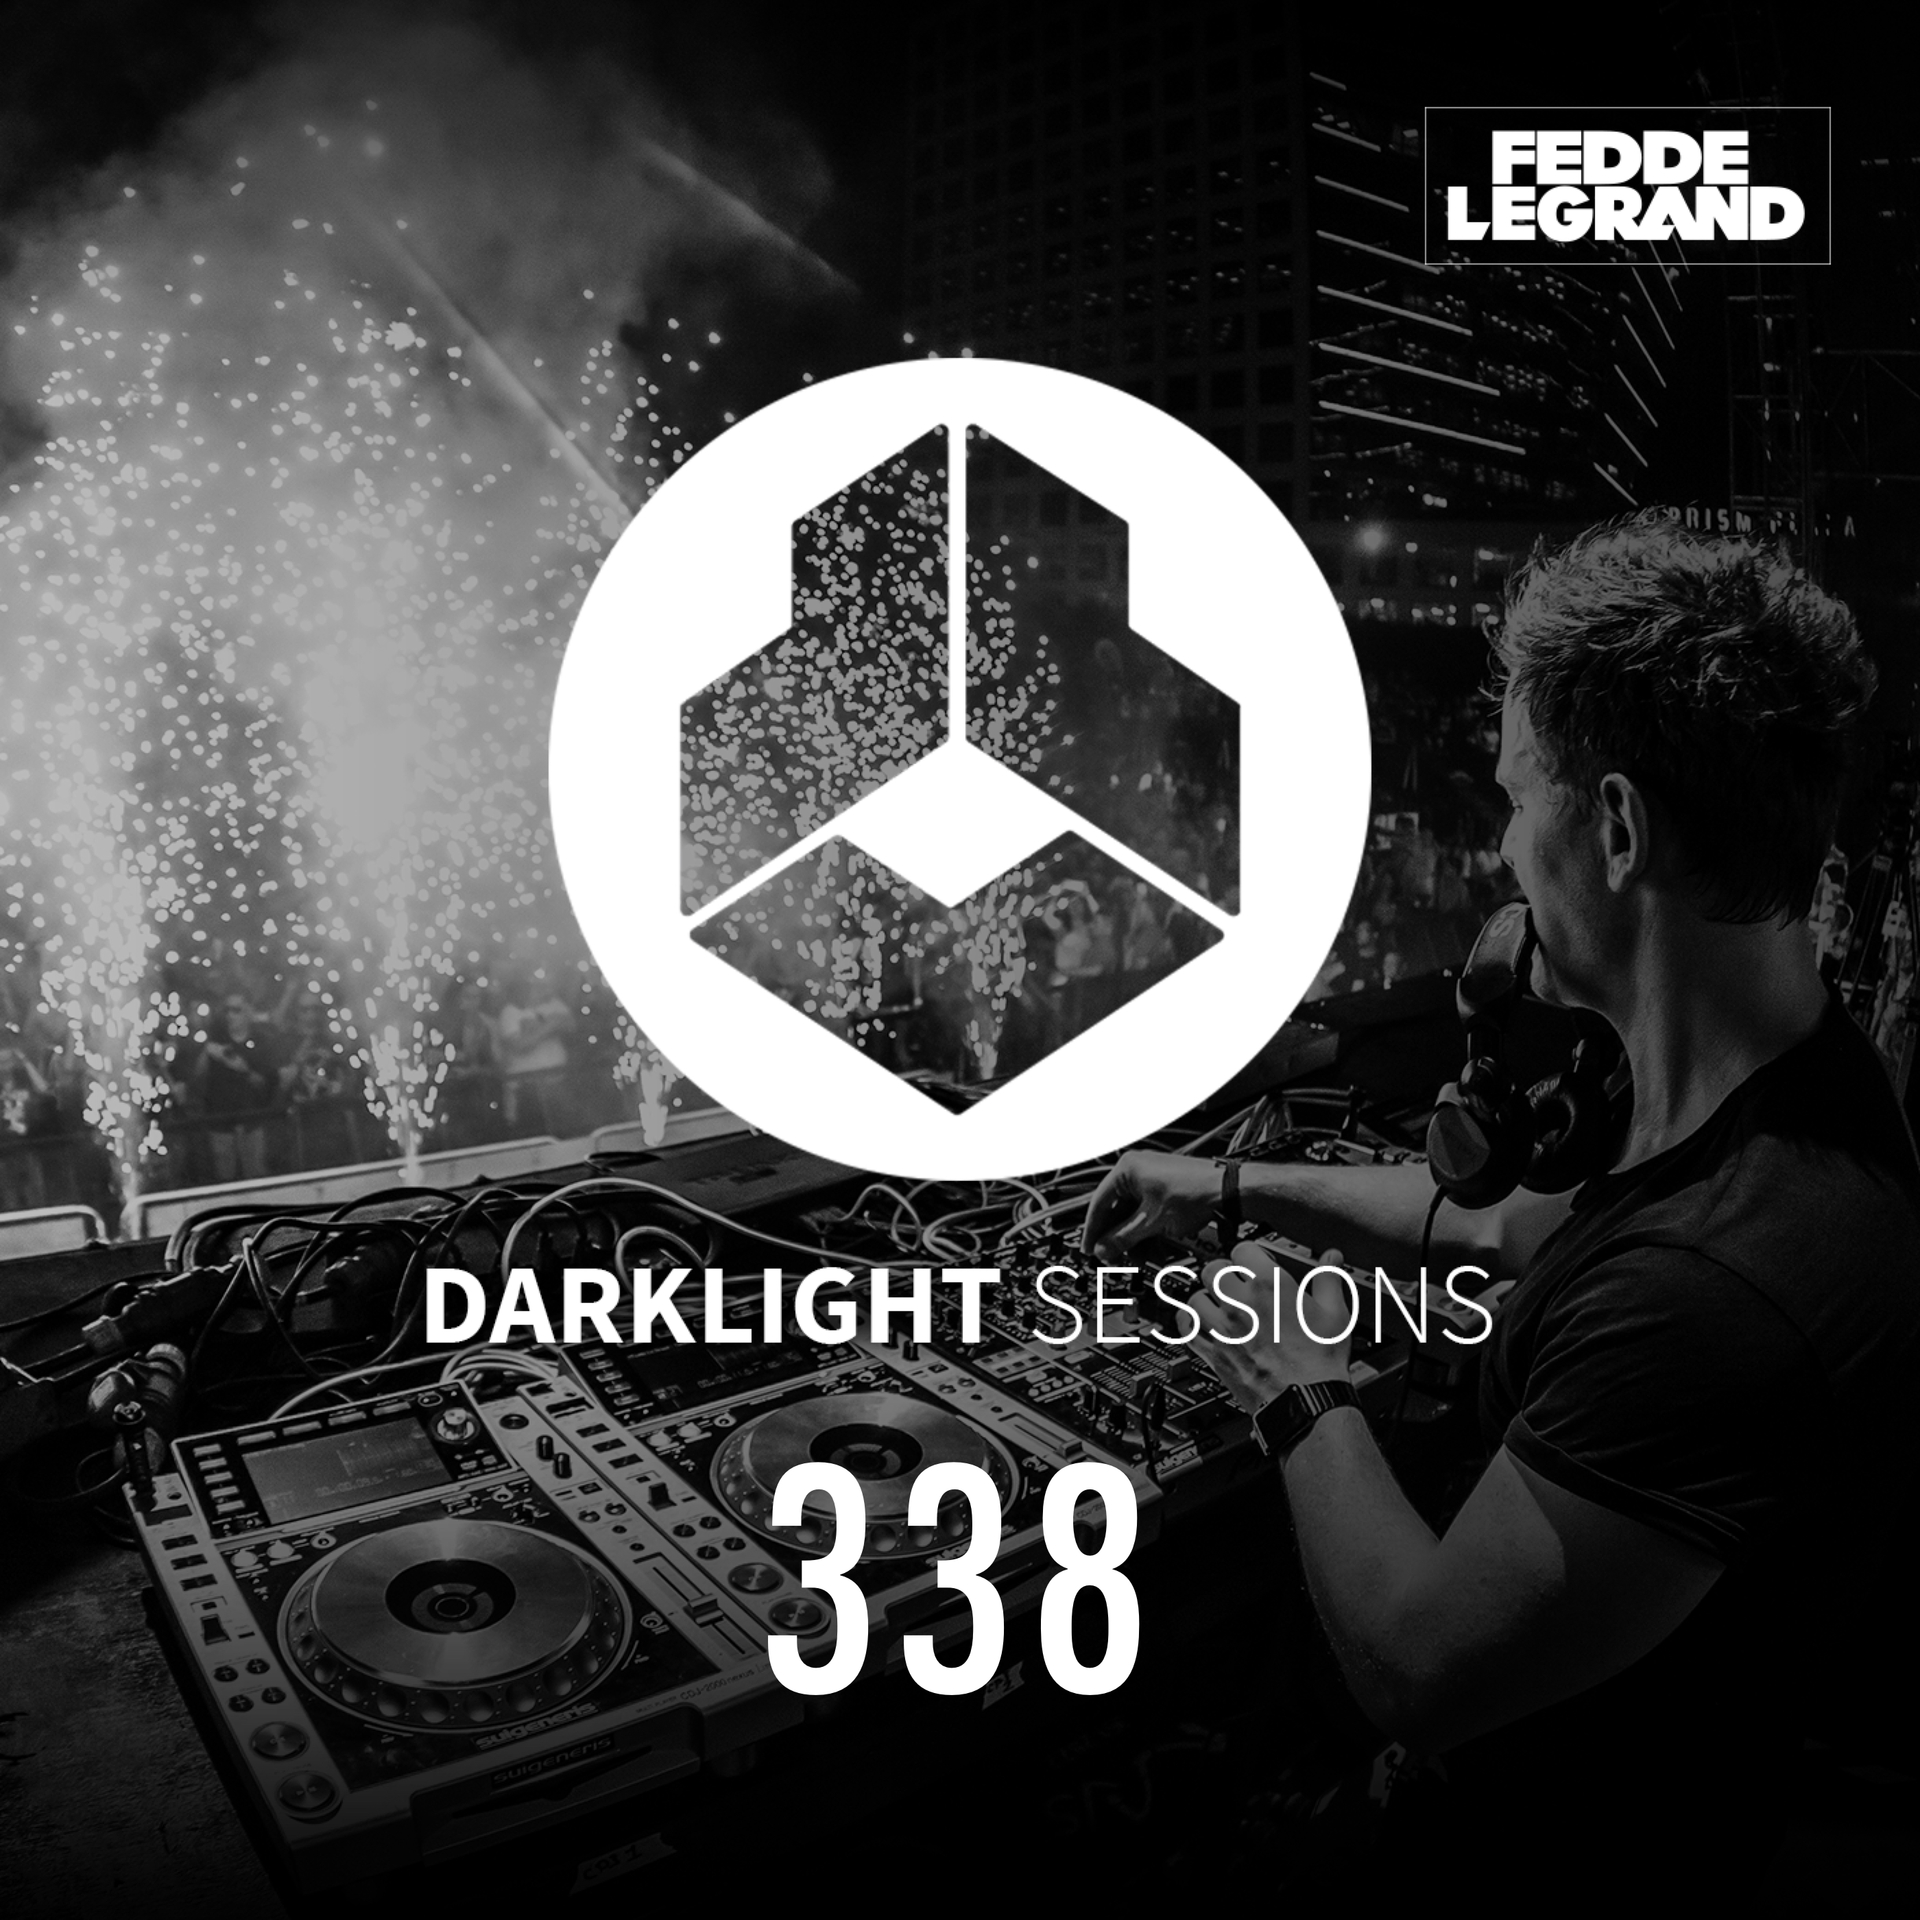 Darklight Sessions 338